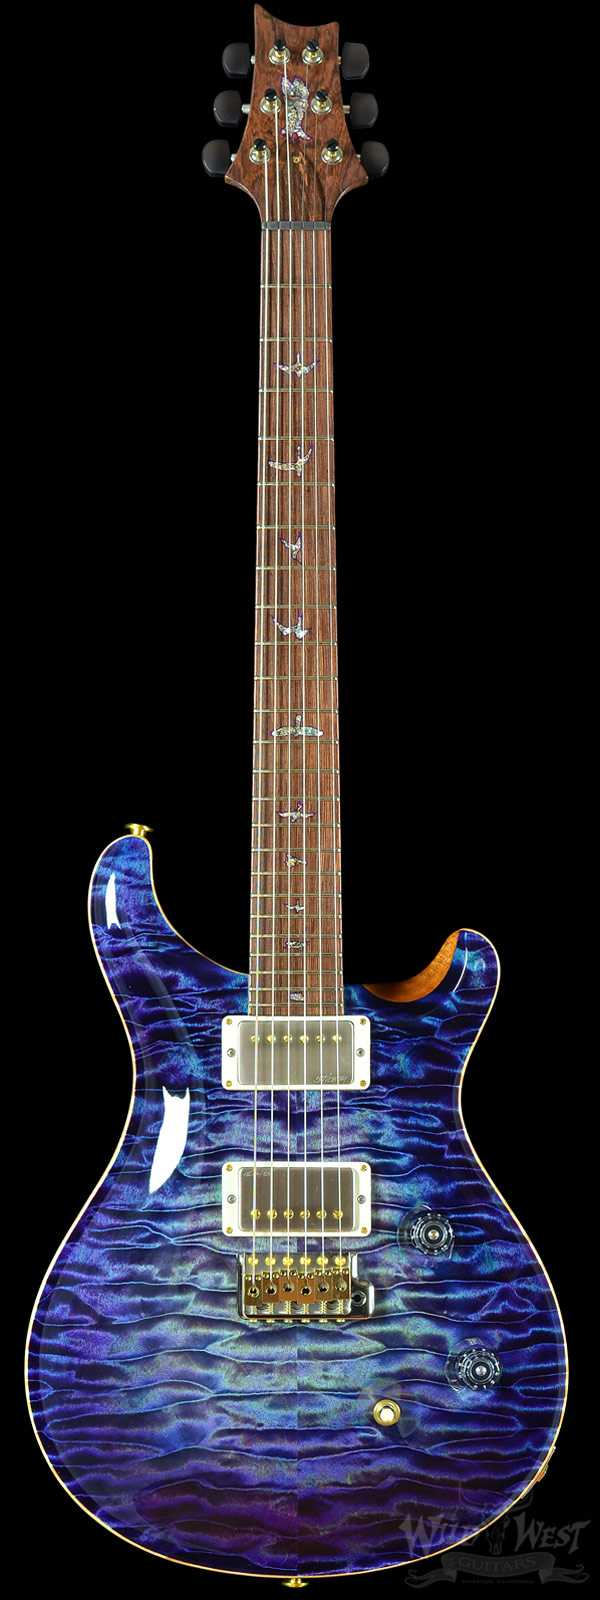 PRS Private Stock #5680 Custom 24 Quilted Maple Aqua Violet Glow w/ Honduran Rosewood Neck